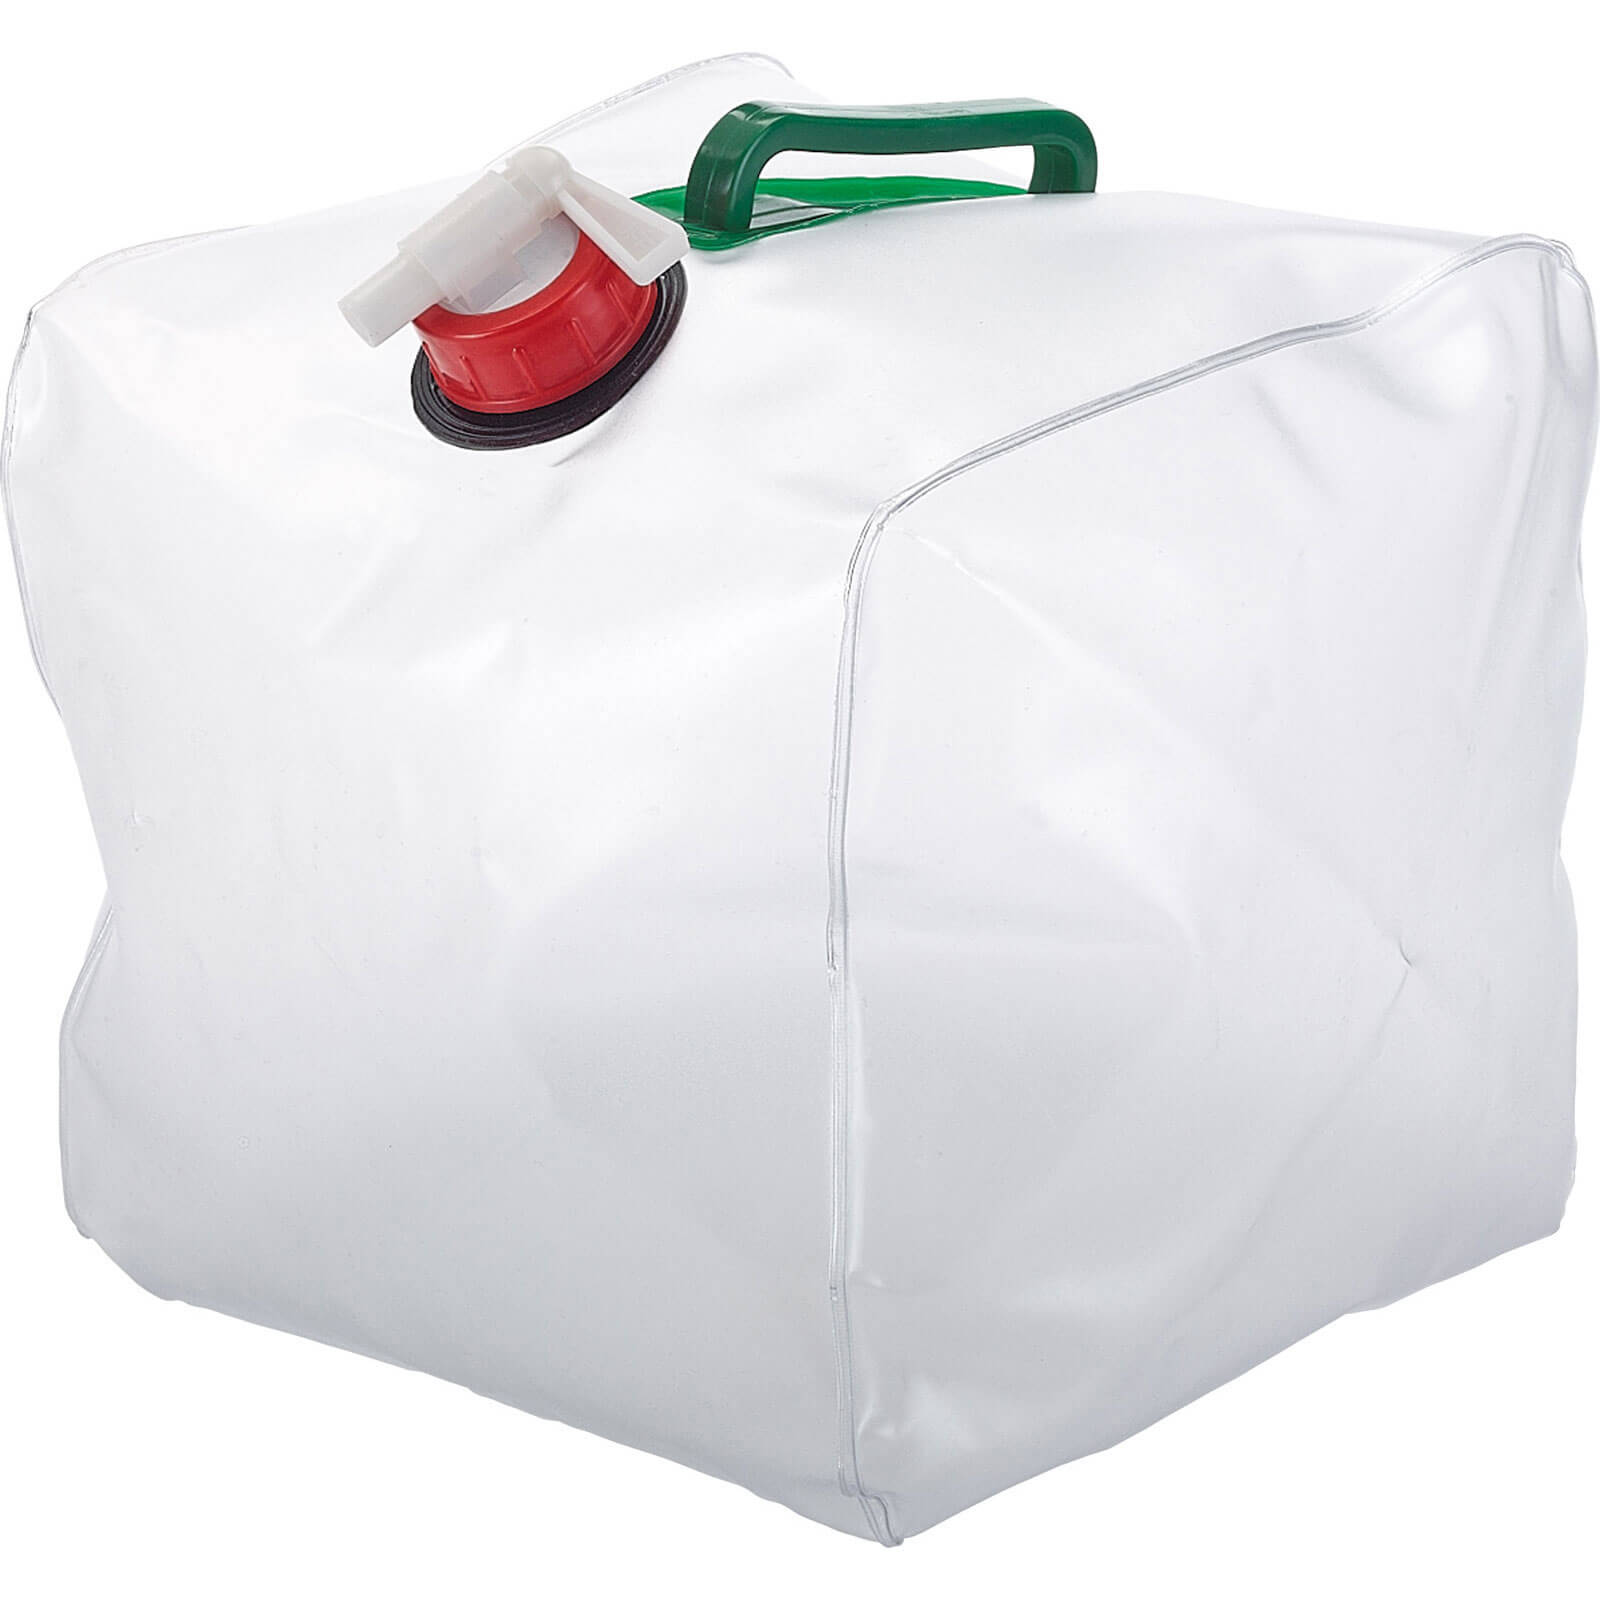 Image of Draper Collapsible Water / Liquid Container 10l